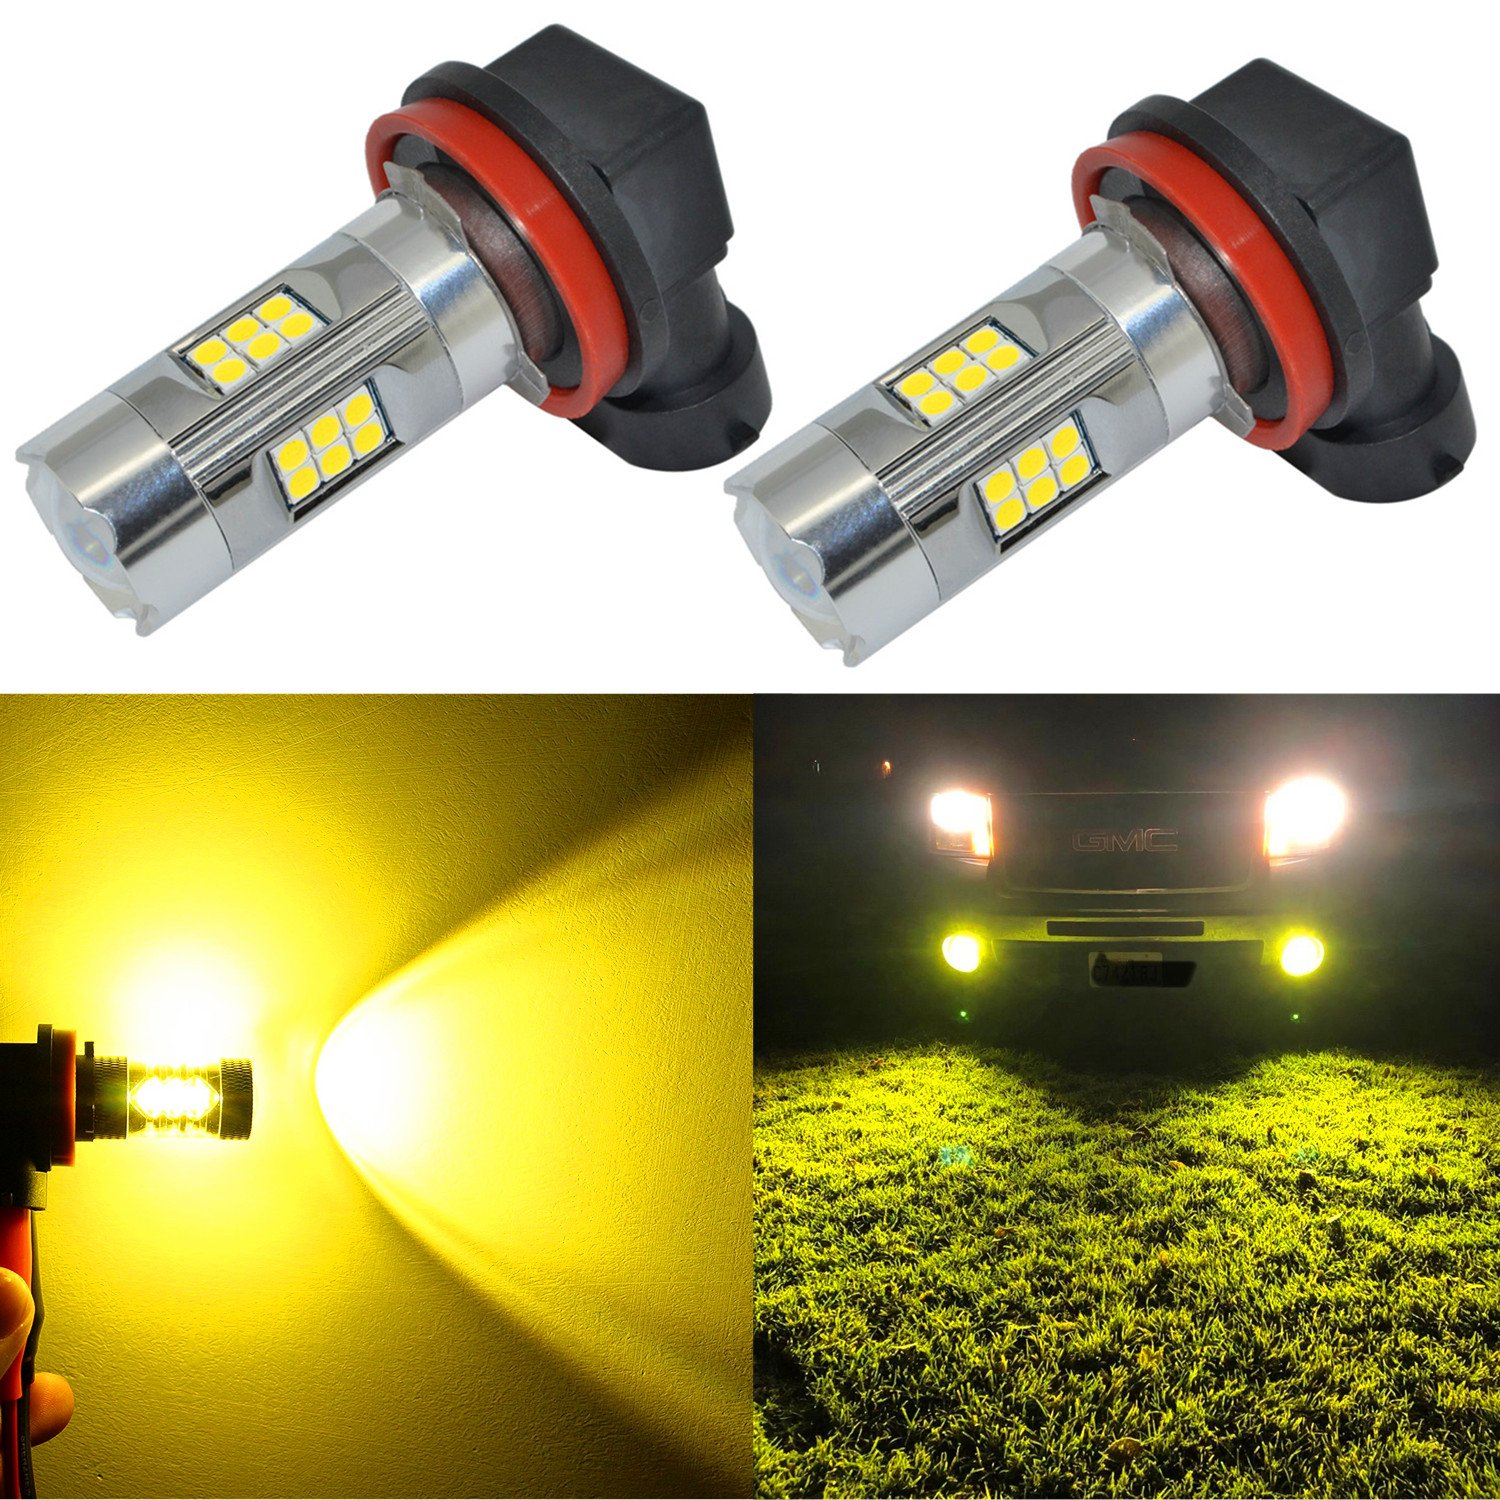 Alla Lighting 3200 Lumens Newest Version Yellow H11 LED Fog Lights Bulb High Power 3030 27-SMD Extremely Super Bright LED H11 Bulb for H16 H11 H8 LED Fog Light Bulbs, 3000K Gold Yellow (Set of 2)